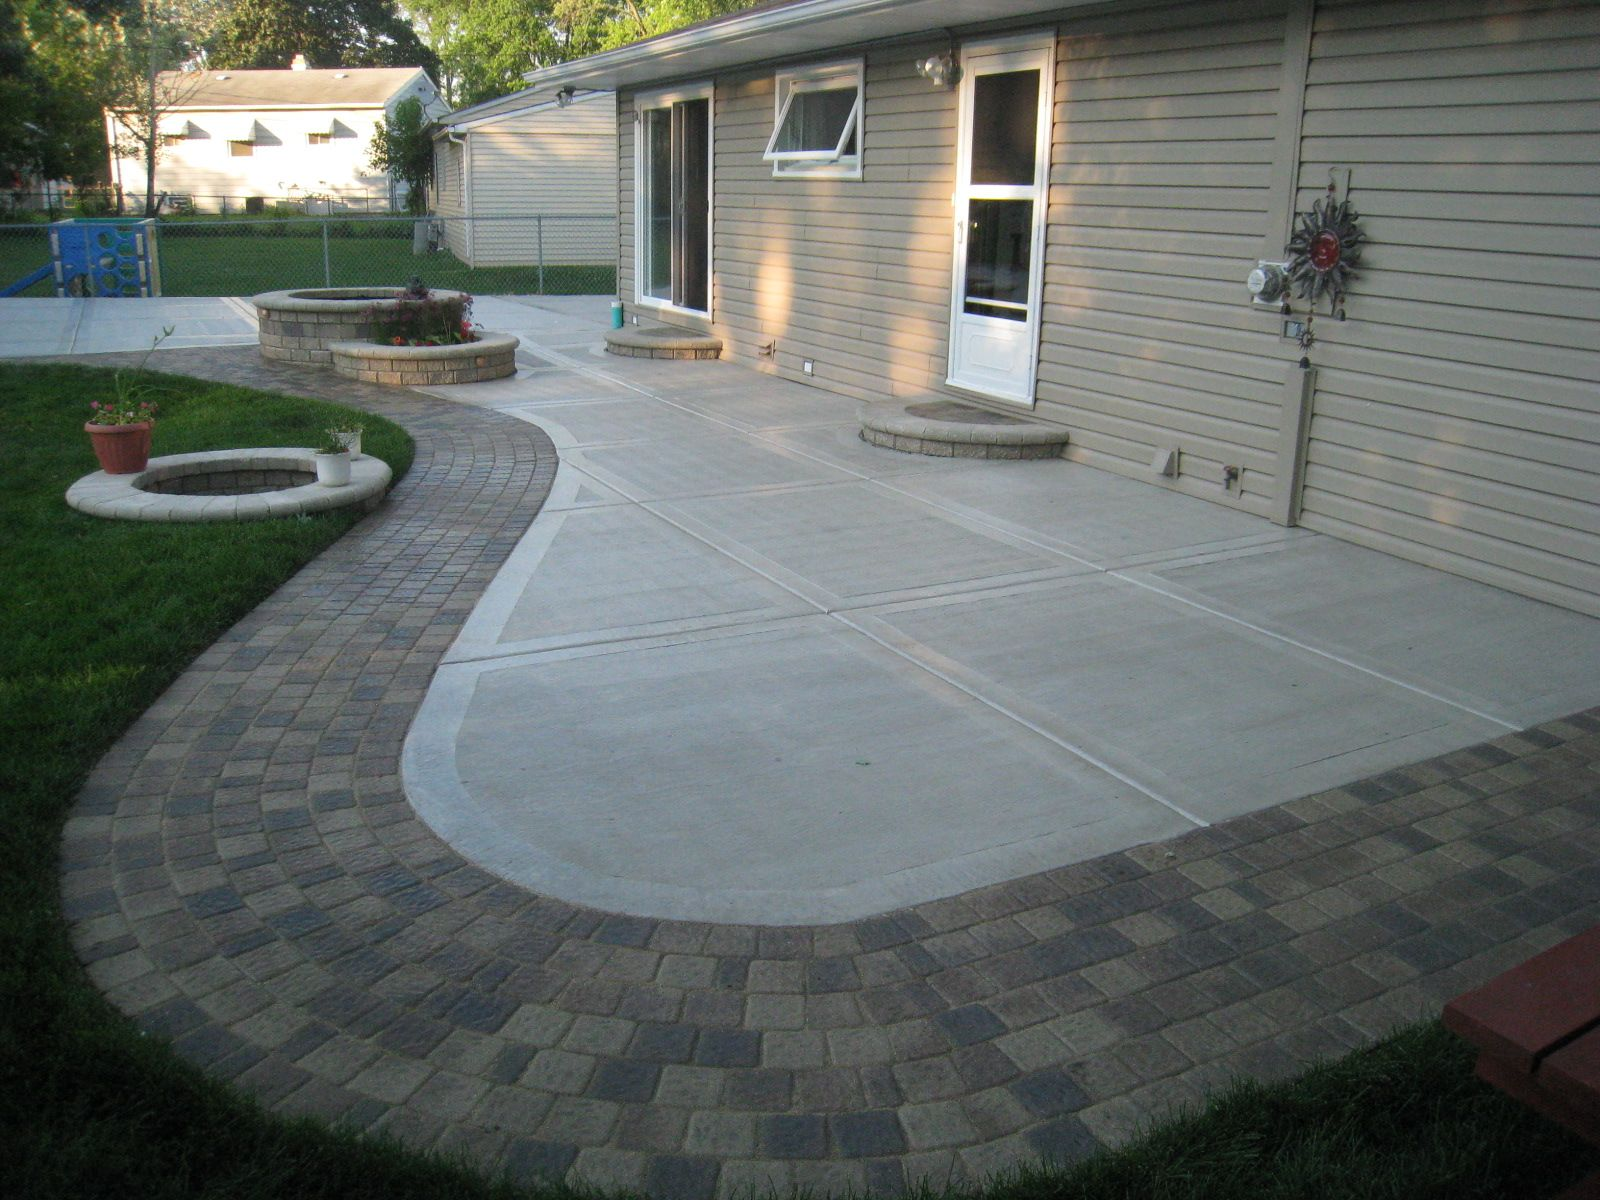 Incroyable Back Yard Concrete Patio Ideas | Concrete Patio California Finish And  Unilock Old Greenwich Sierra...I Like The Concrete With Brick Edging.